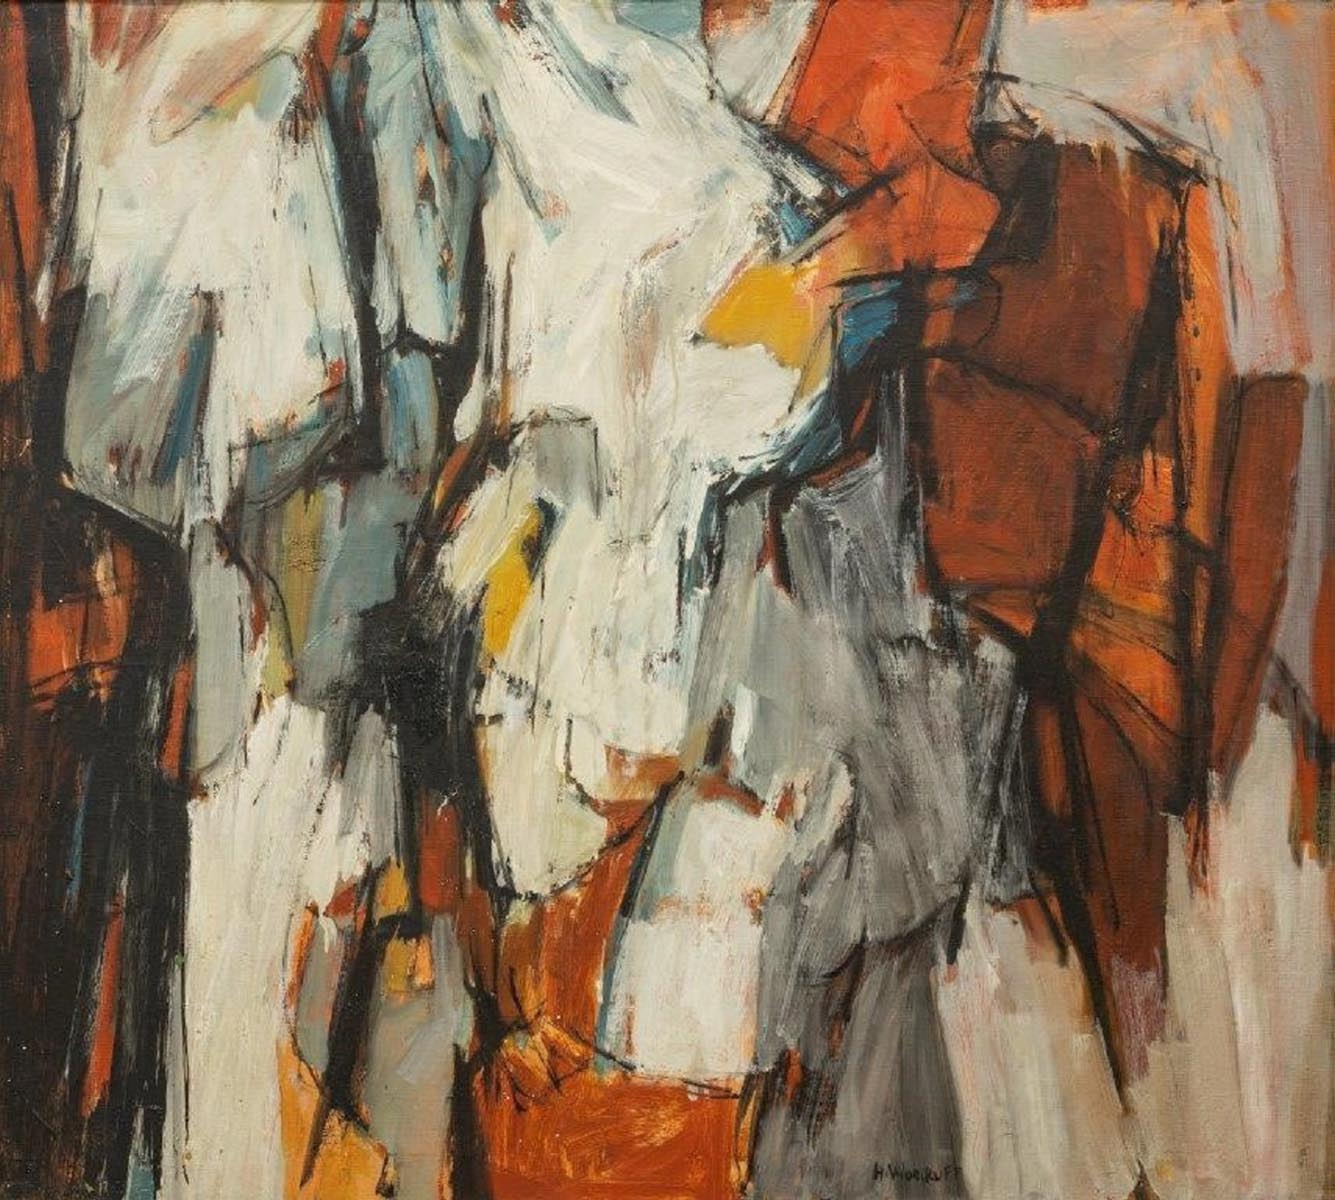 Hale Woodruff, Two Figures Abstraction, 1958. Oil on canvas.